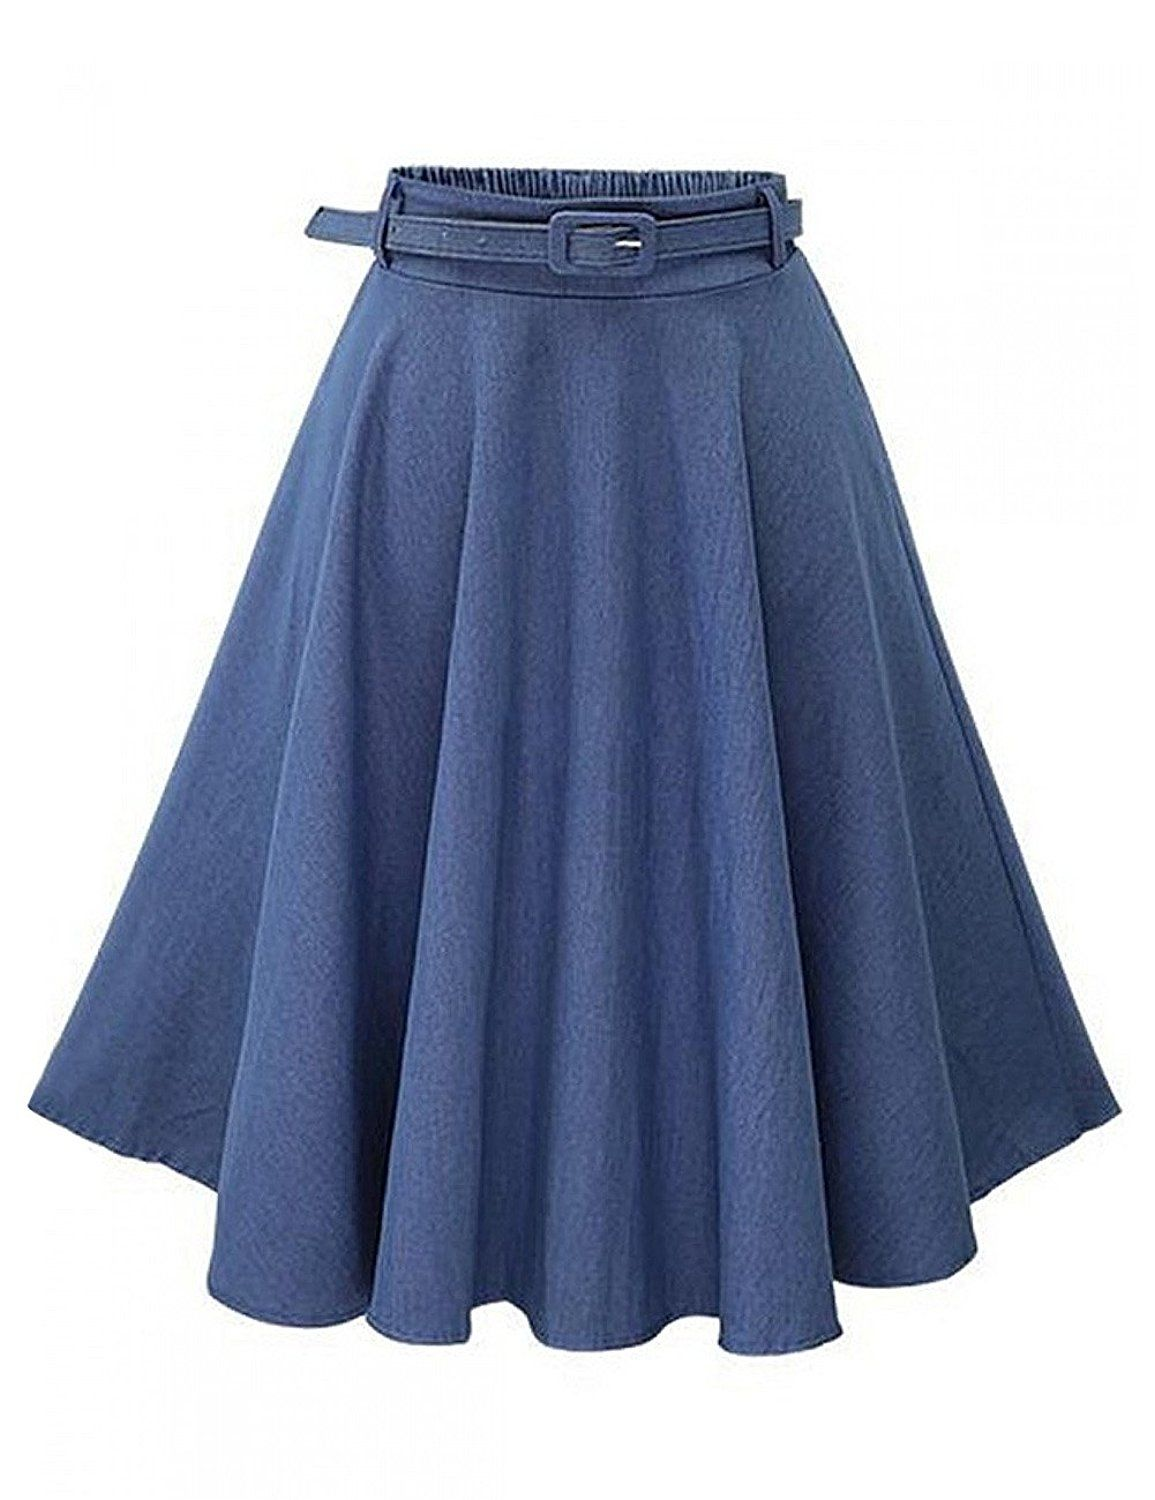 Leadingstar Women's Retro Vintage Pleated Denim Party Skater Skirt A Line Jeans Skirt   https://www.amazon.com/gp/product/B01J7LUIR2/ref=as_li_qf_sp_asin_il_tl?ie=UTF8&tag=rockaclothsto-20&camp=1789&creative=9325&linkCode=as2&creativeASIN=B01J7LUIR2&linkId=08e000469c03dda35125cd51f91b5f61